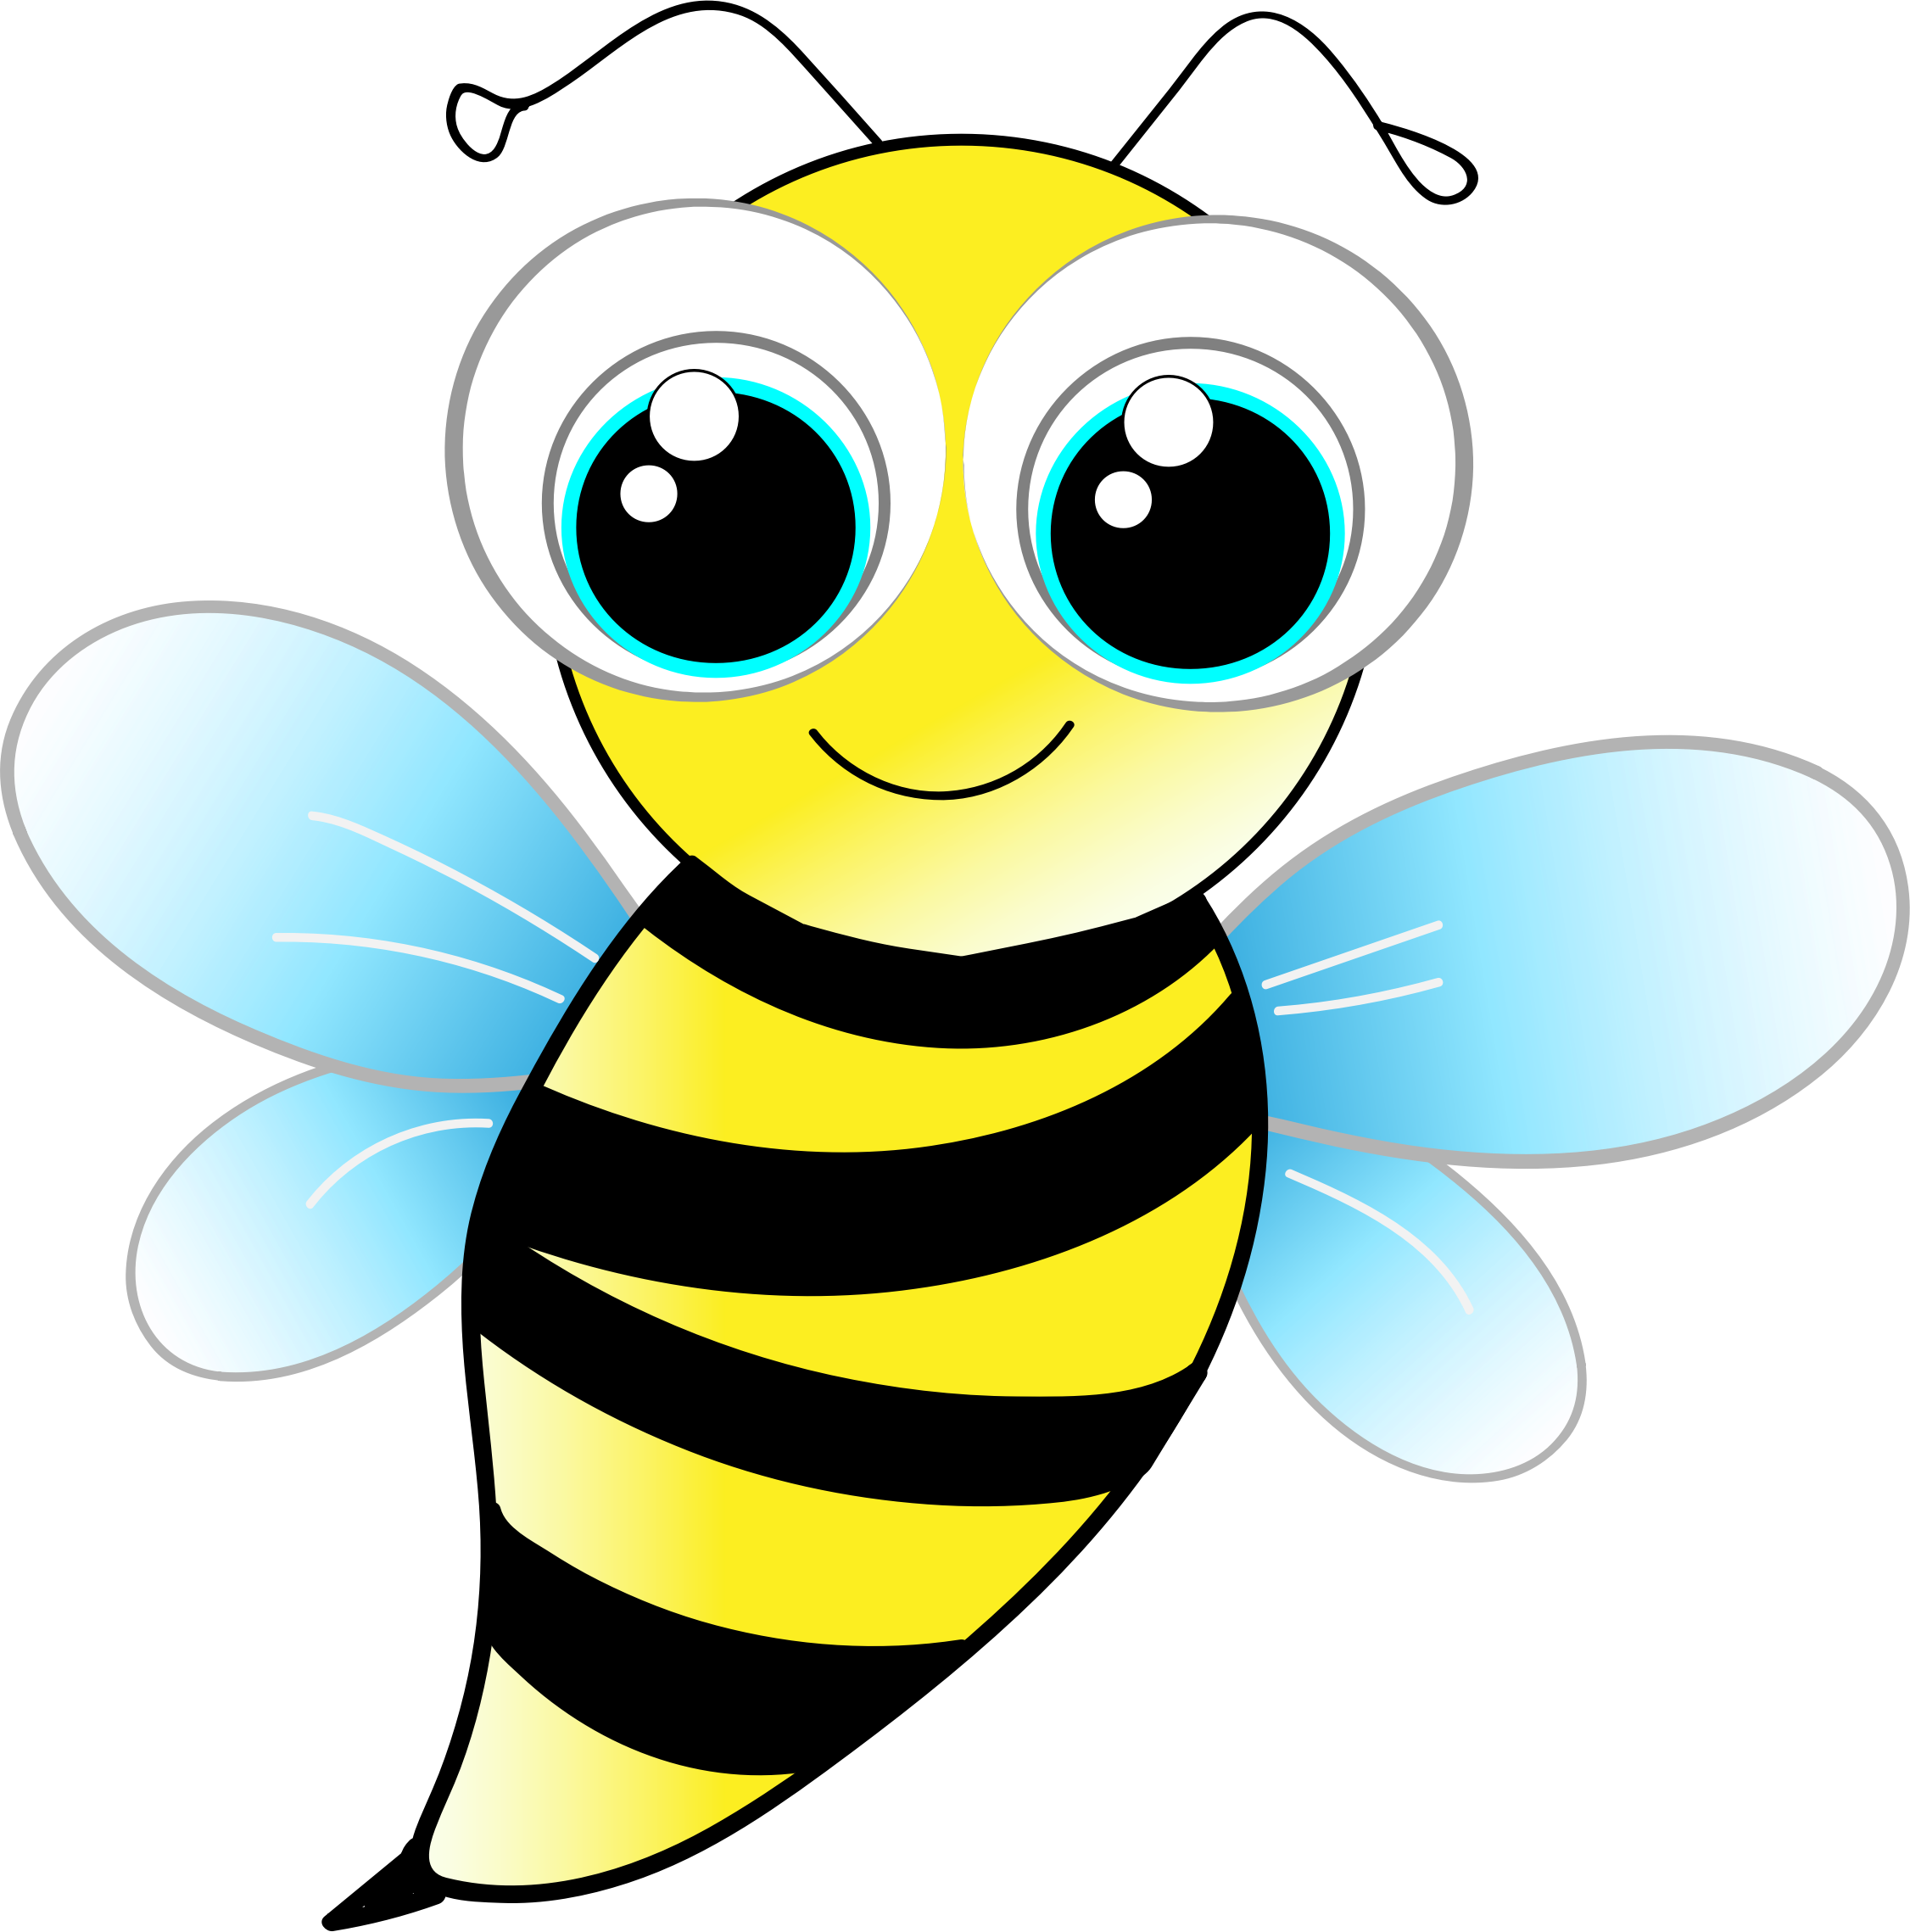 Beehive on a tree clipart clip freeuse library Friendly Bee by @GDJ, From Pixabay., on @openclipart | The Bees ... clip freeuse library